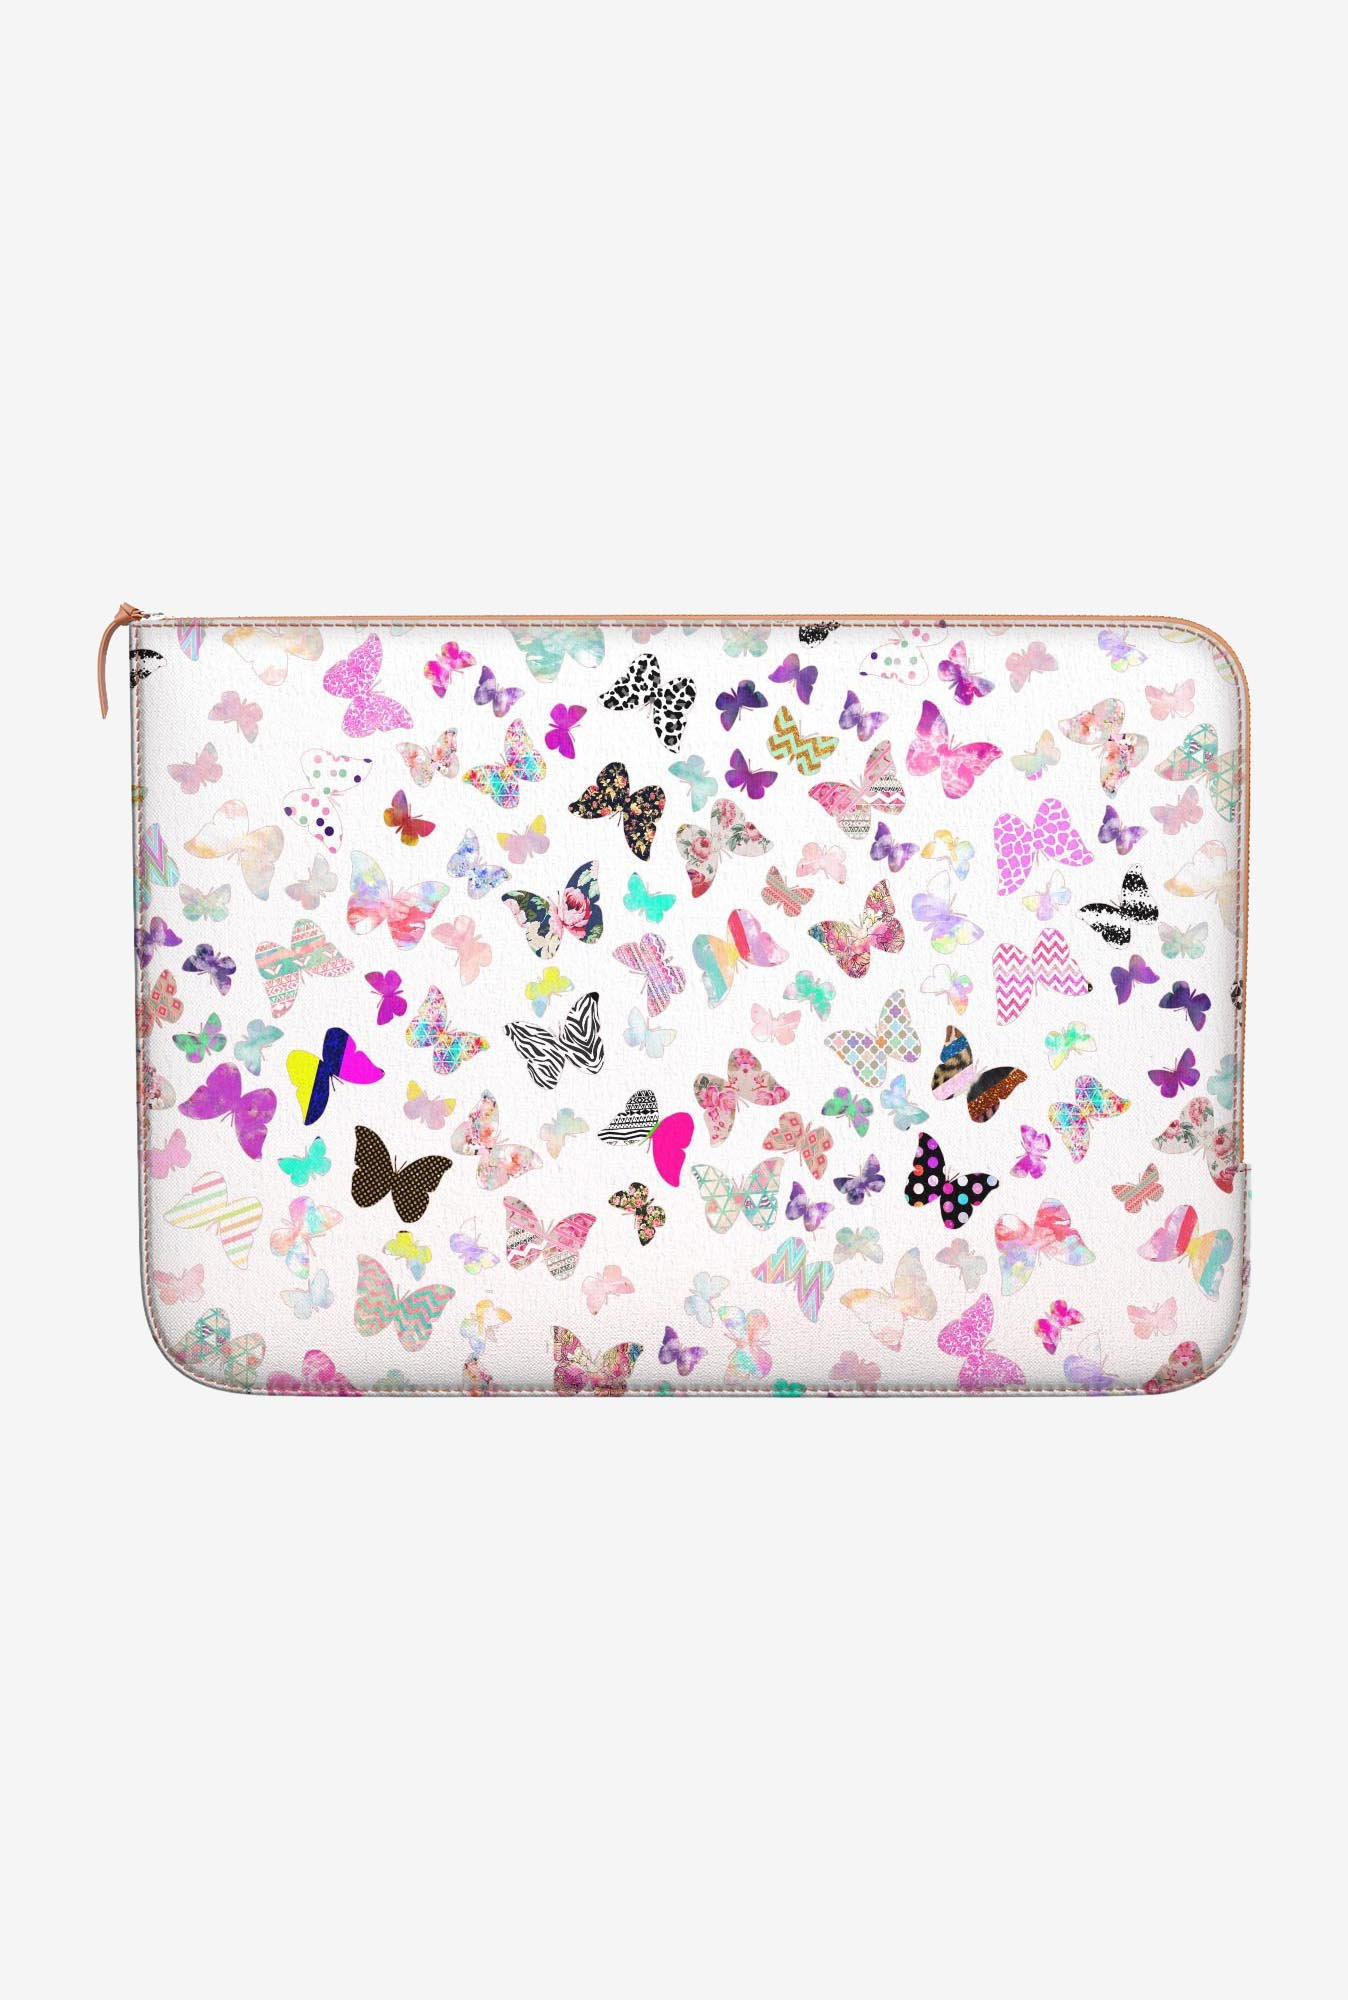 DailyObjects Butterfly MacBook 12 Zippered Sleeve